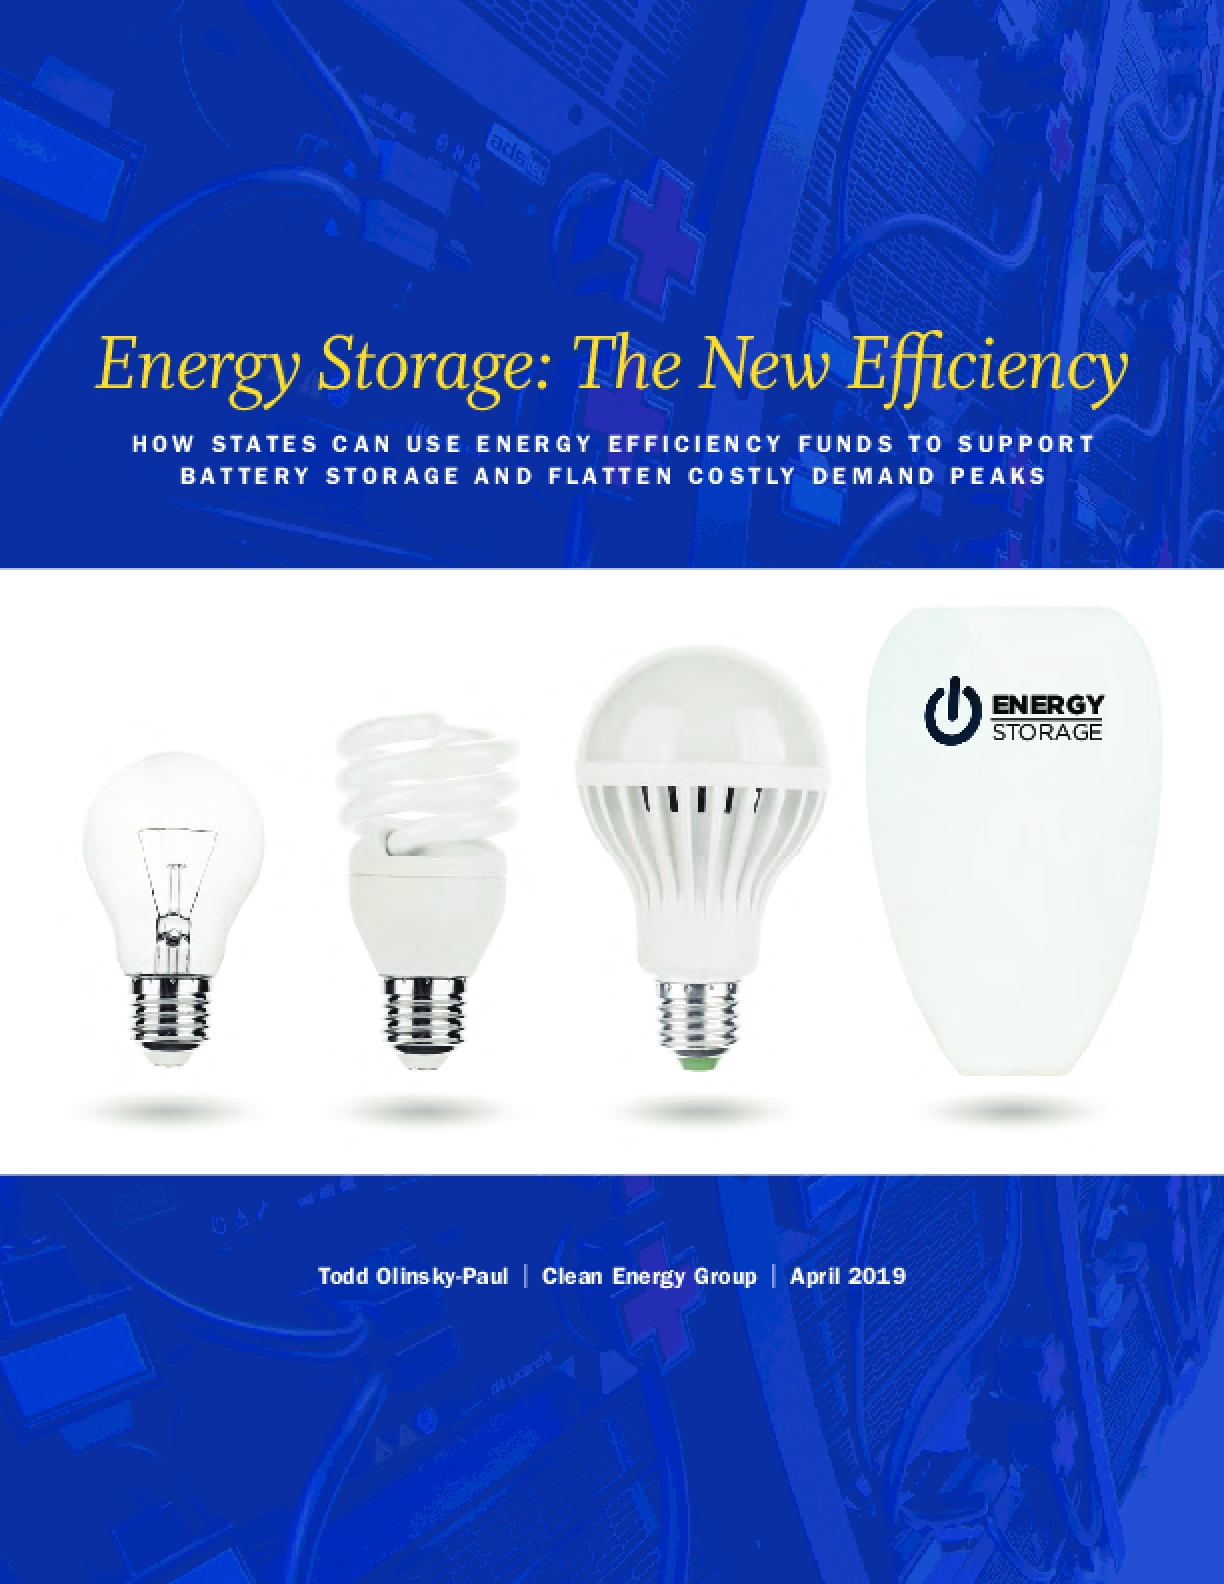 Energy Storage: The New Efficiency